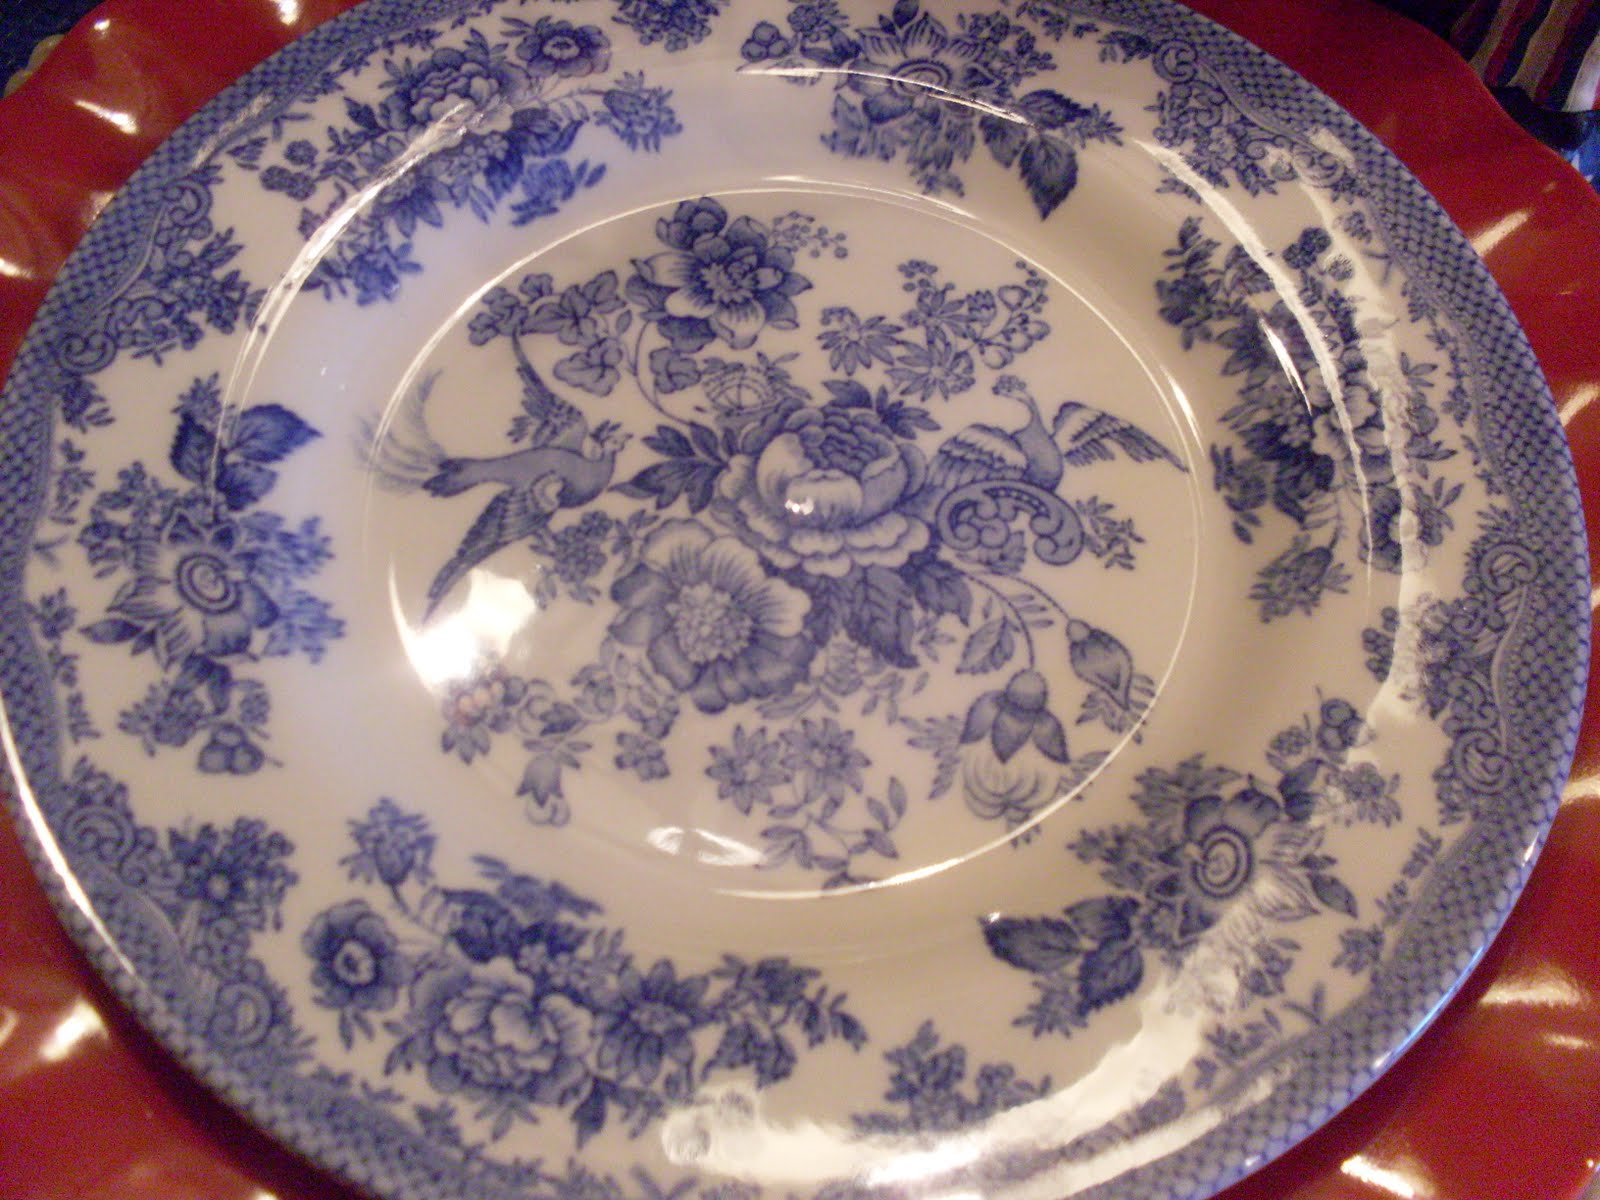 White ironstone dinner plates from JC Penney. Red scallop plates also from JC Penny. Blue and white Royal Stafford plates from TJ Maxx a few years ago. & FLOWERSHOPGURL: \